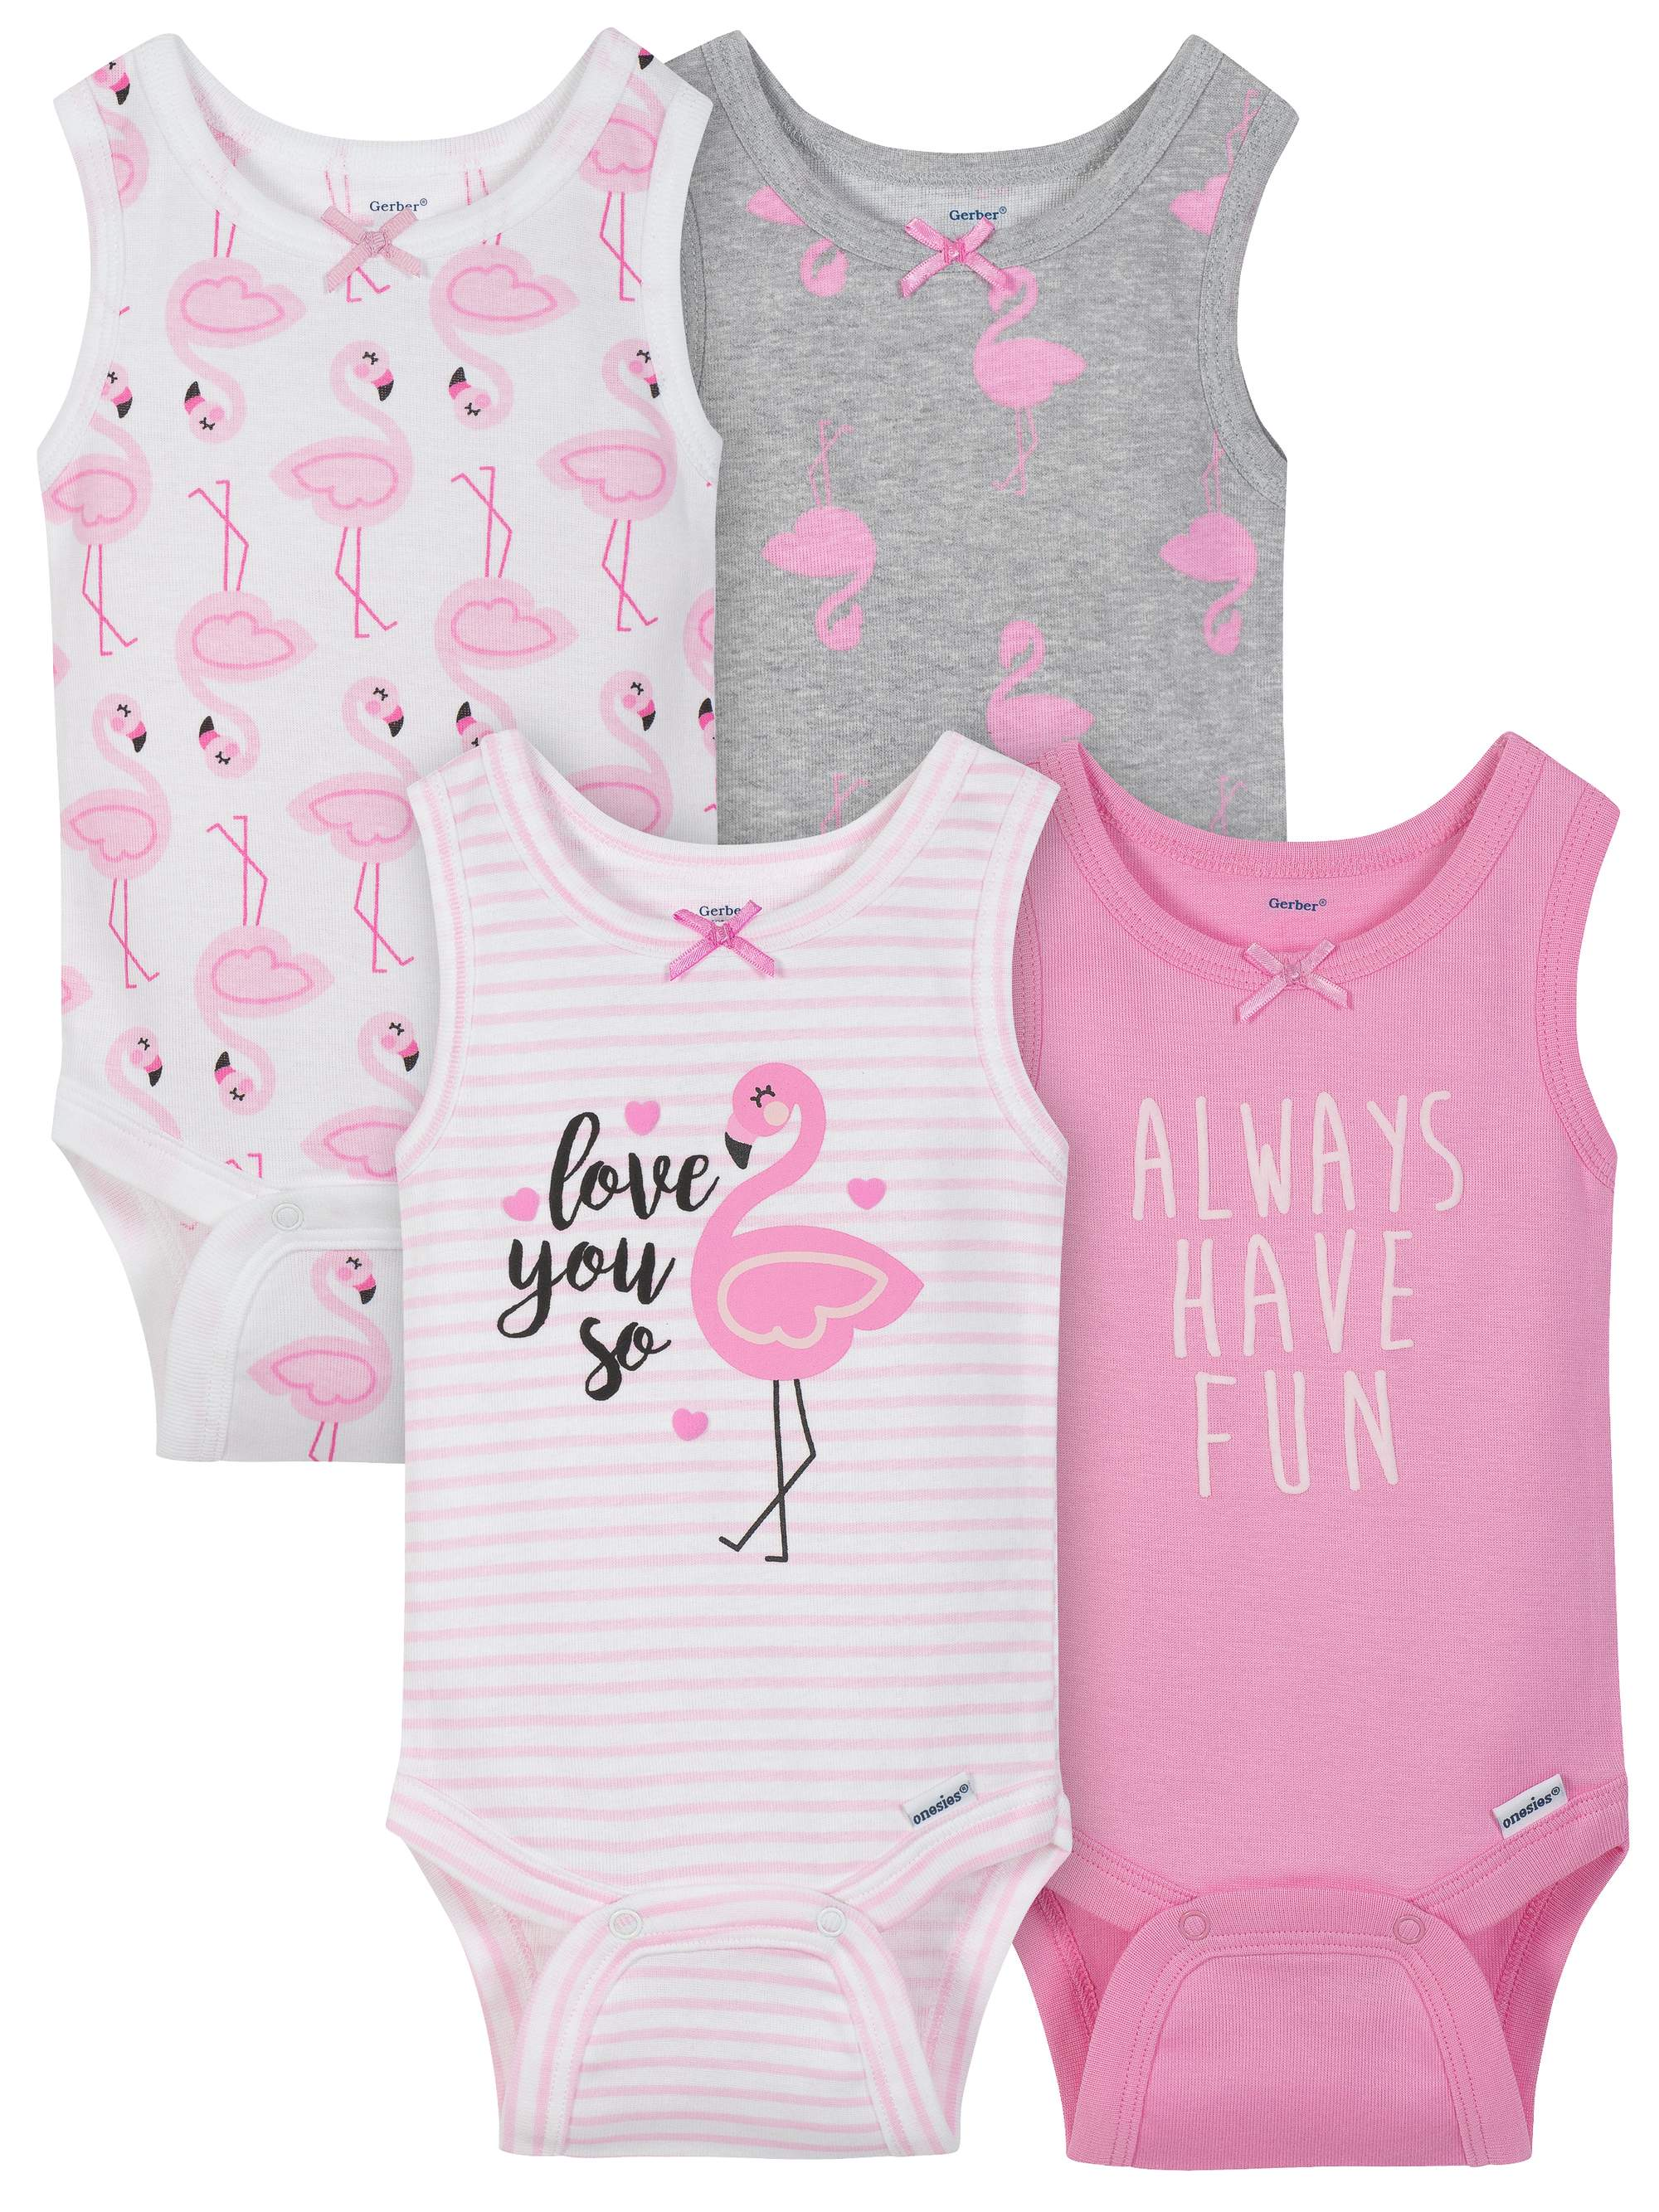 Sleeveless Tank Top Onesies Bodysuits, 4pk (Baby Girls)